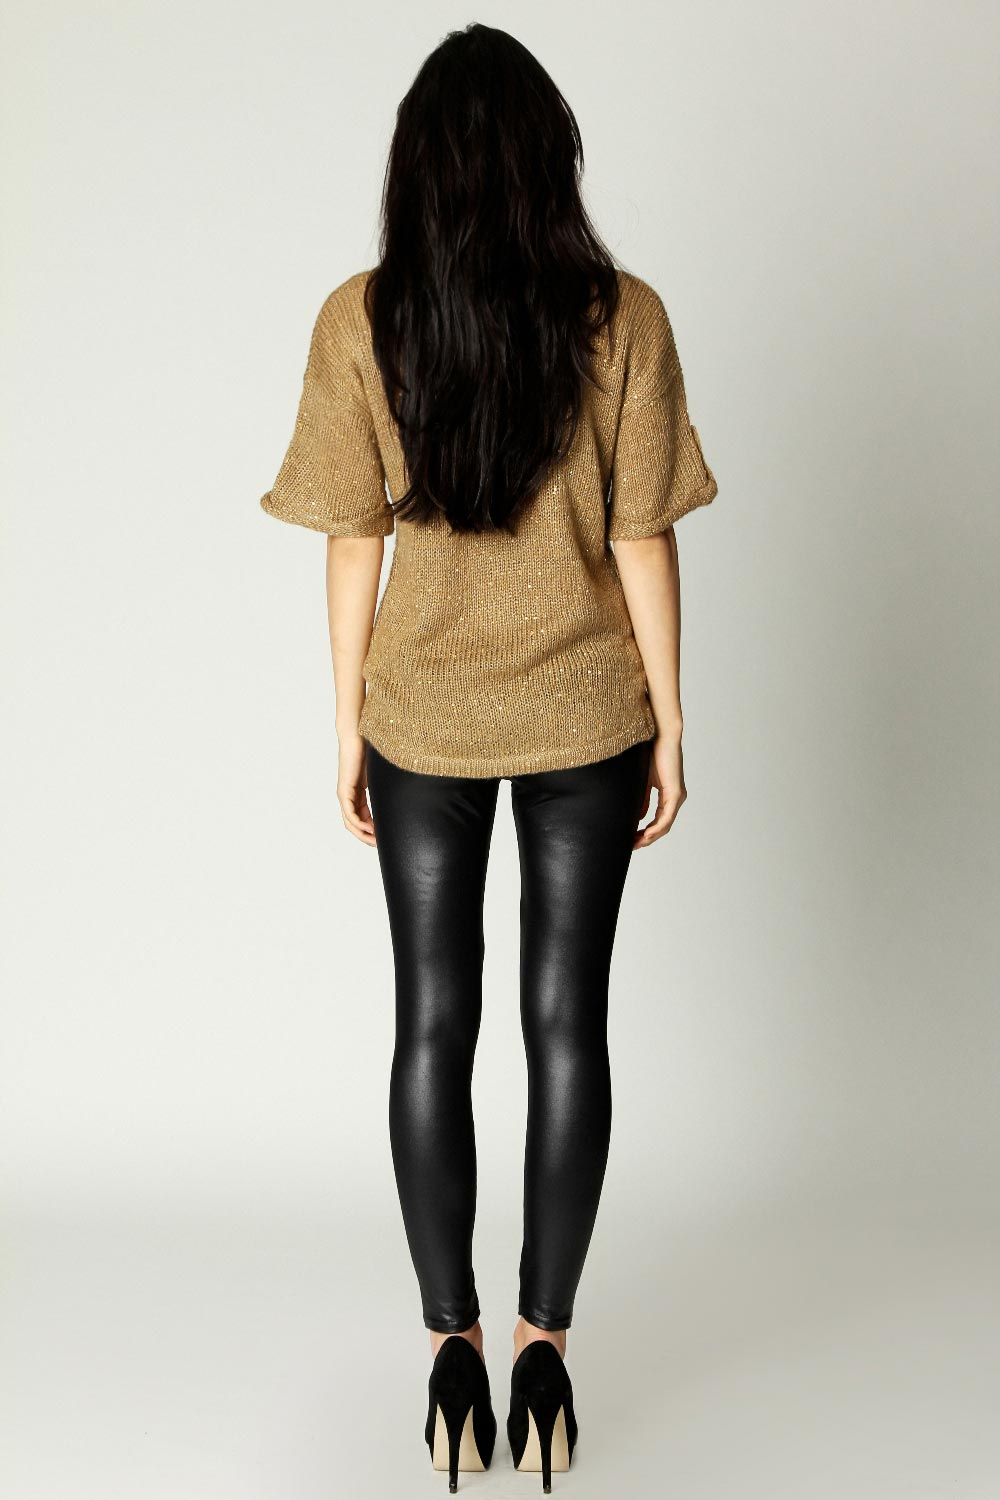 Boohoo carla wet look leggings in black style notes style notes wet